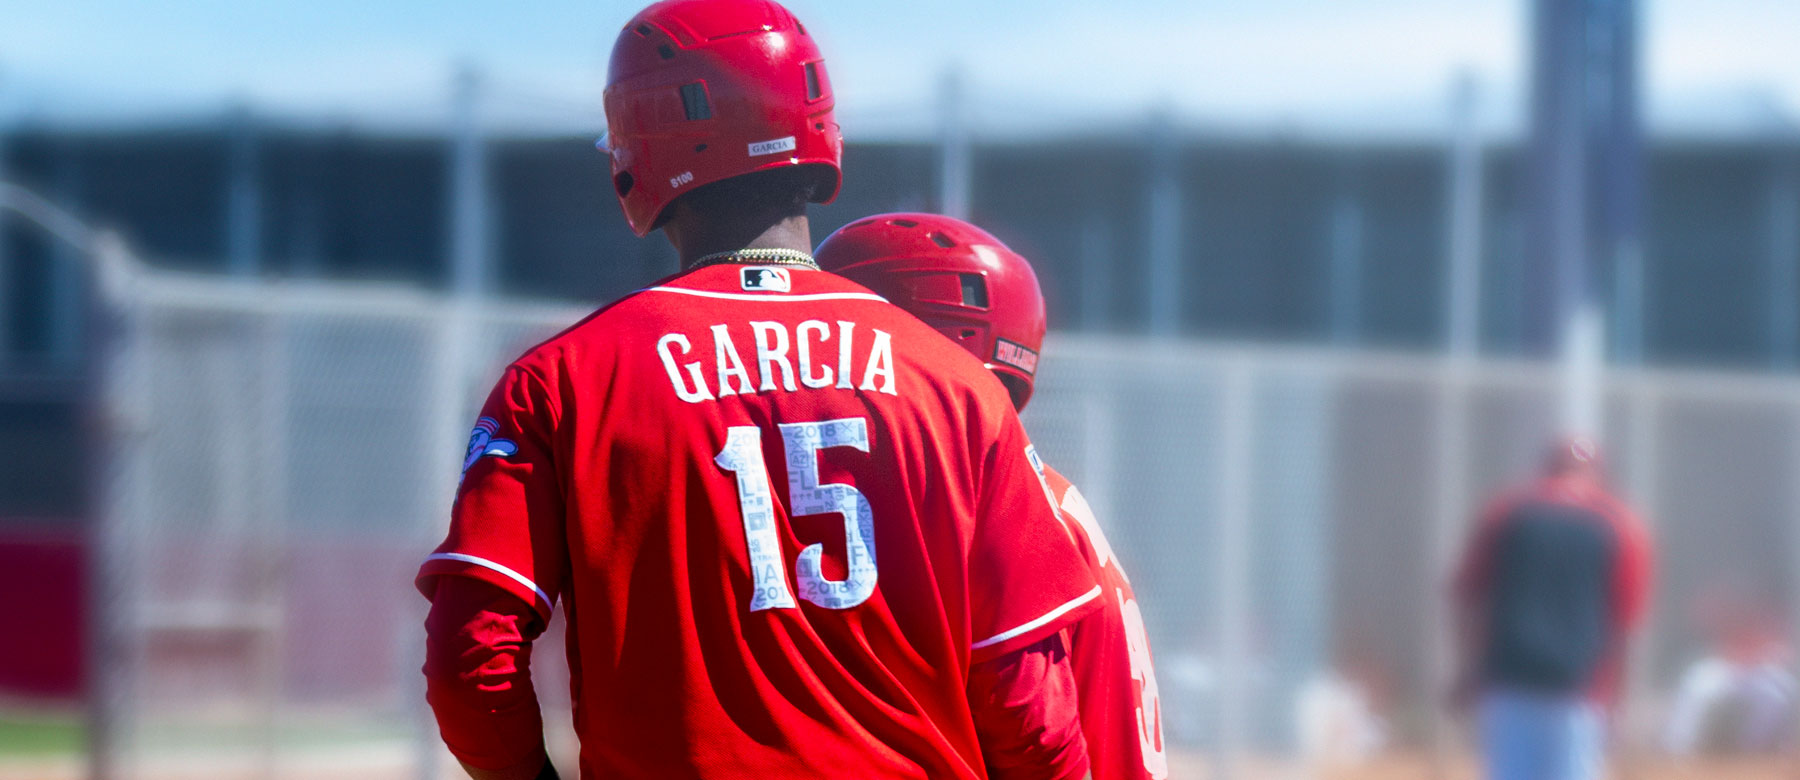 Is Jose Garcia the Reds fastest rising prospect?